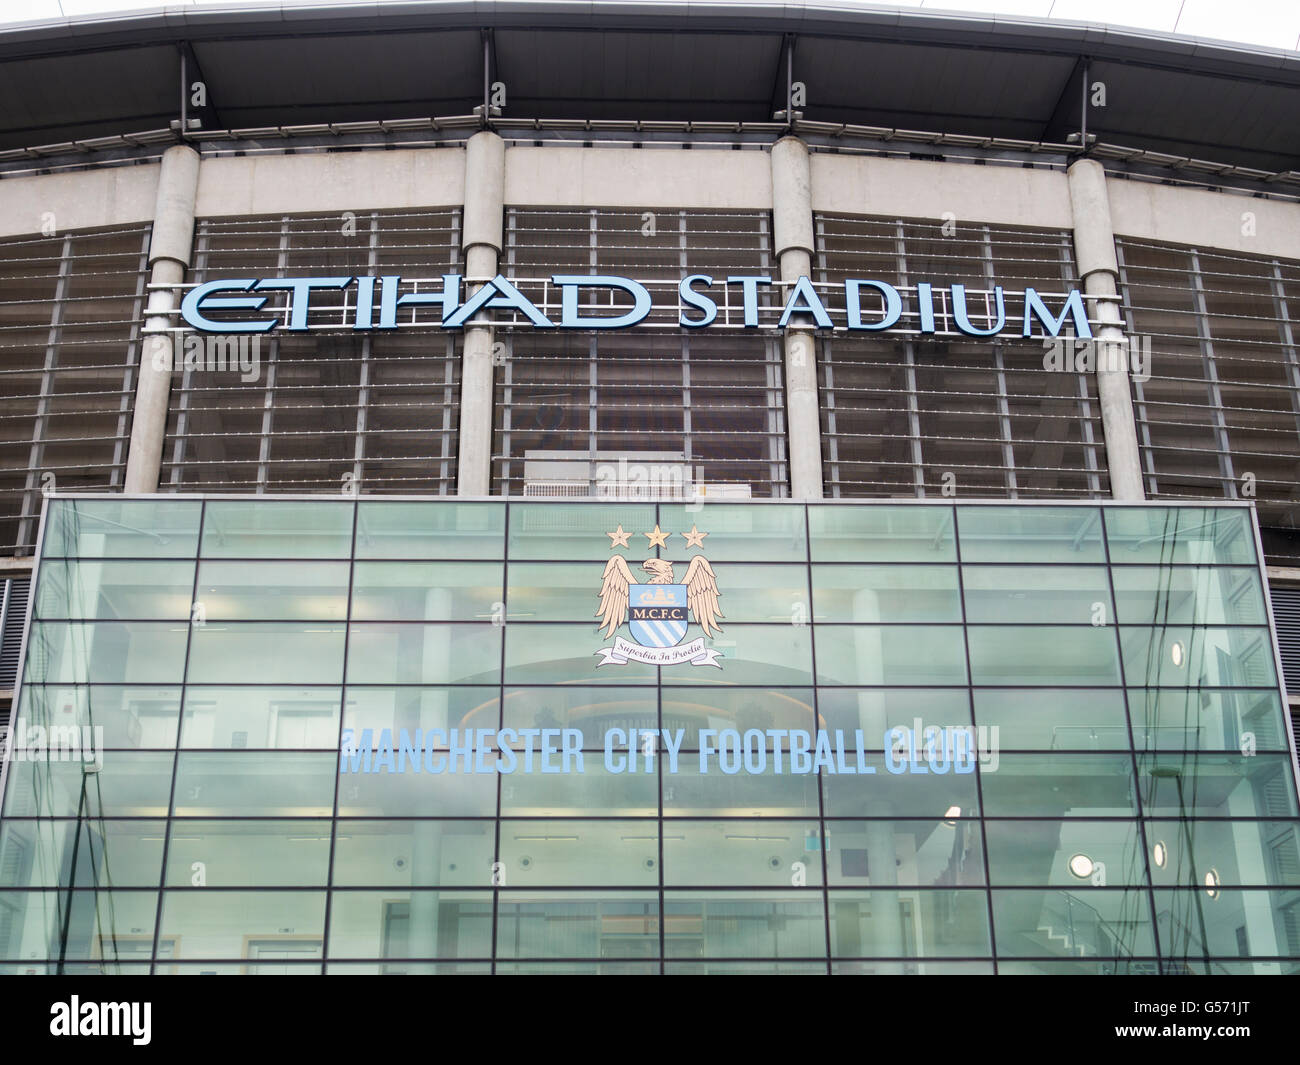 Etihad Stadium The Colin Bell Stand entrance - Stock Image